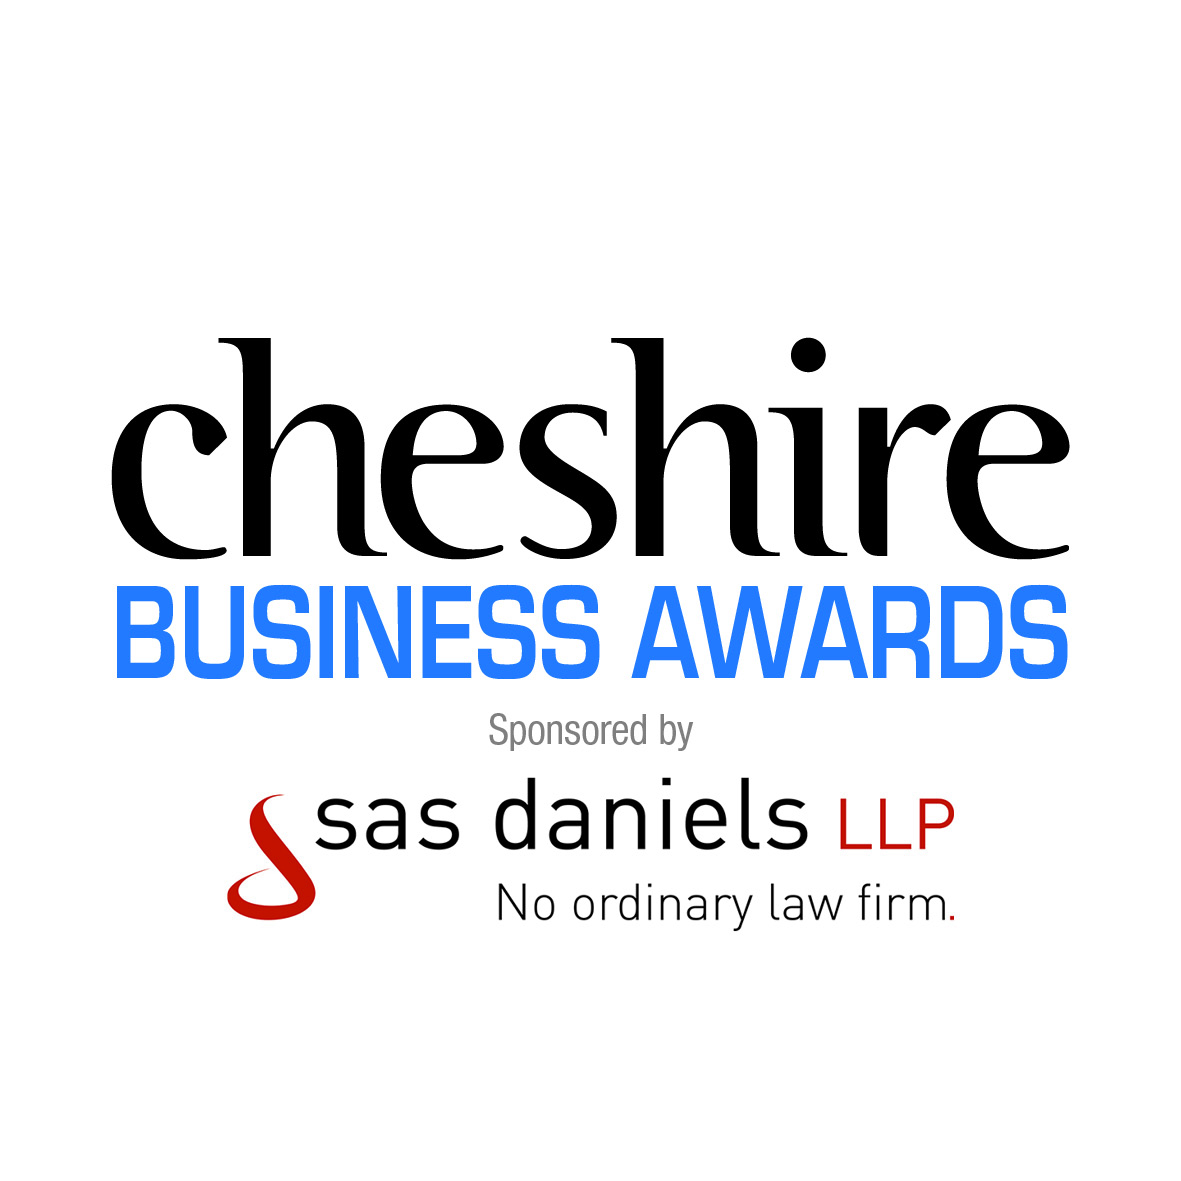 the logo for the Cheshire business awards sponsored by SAS Daniels LLP